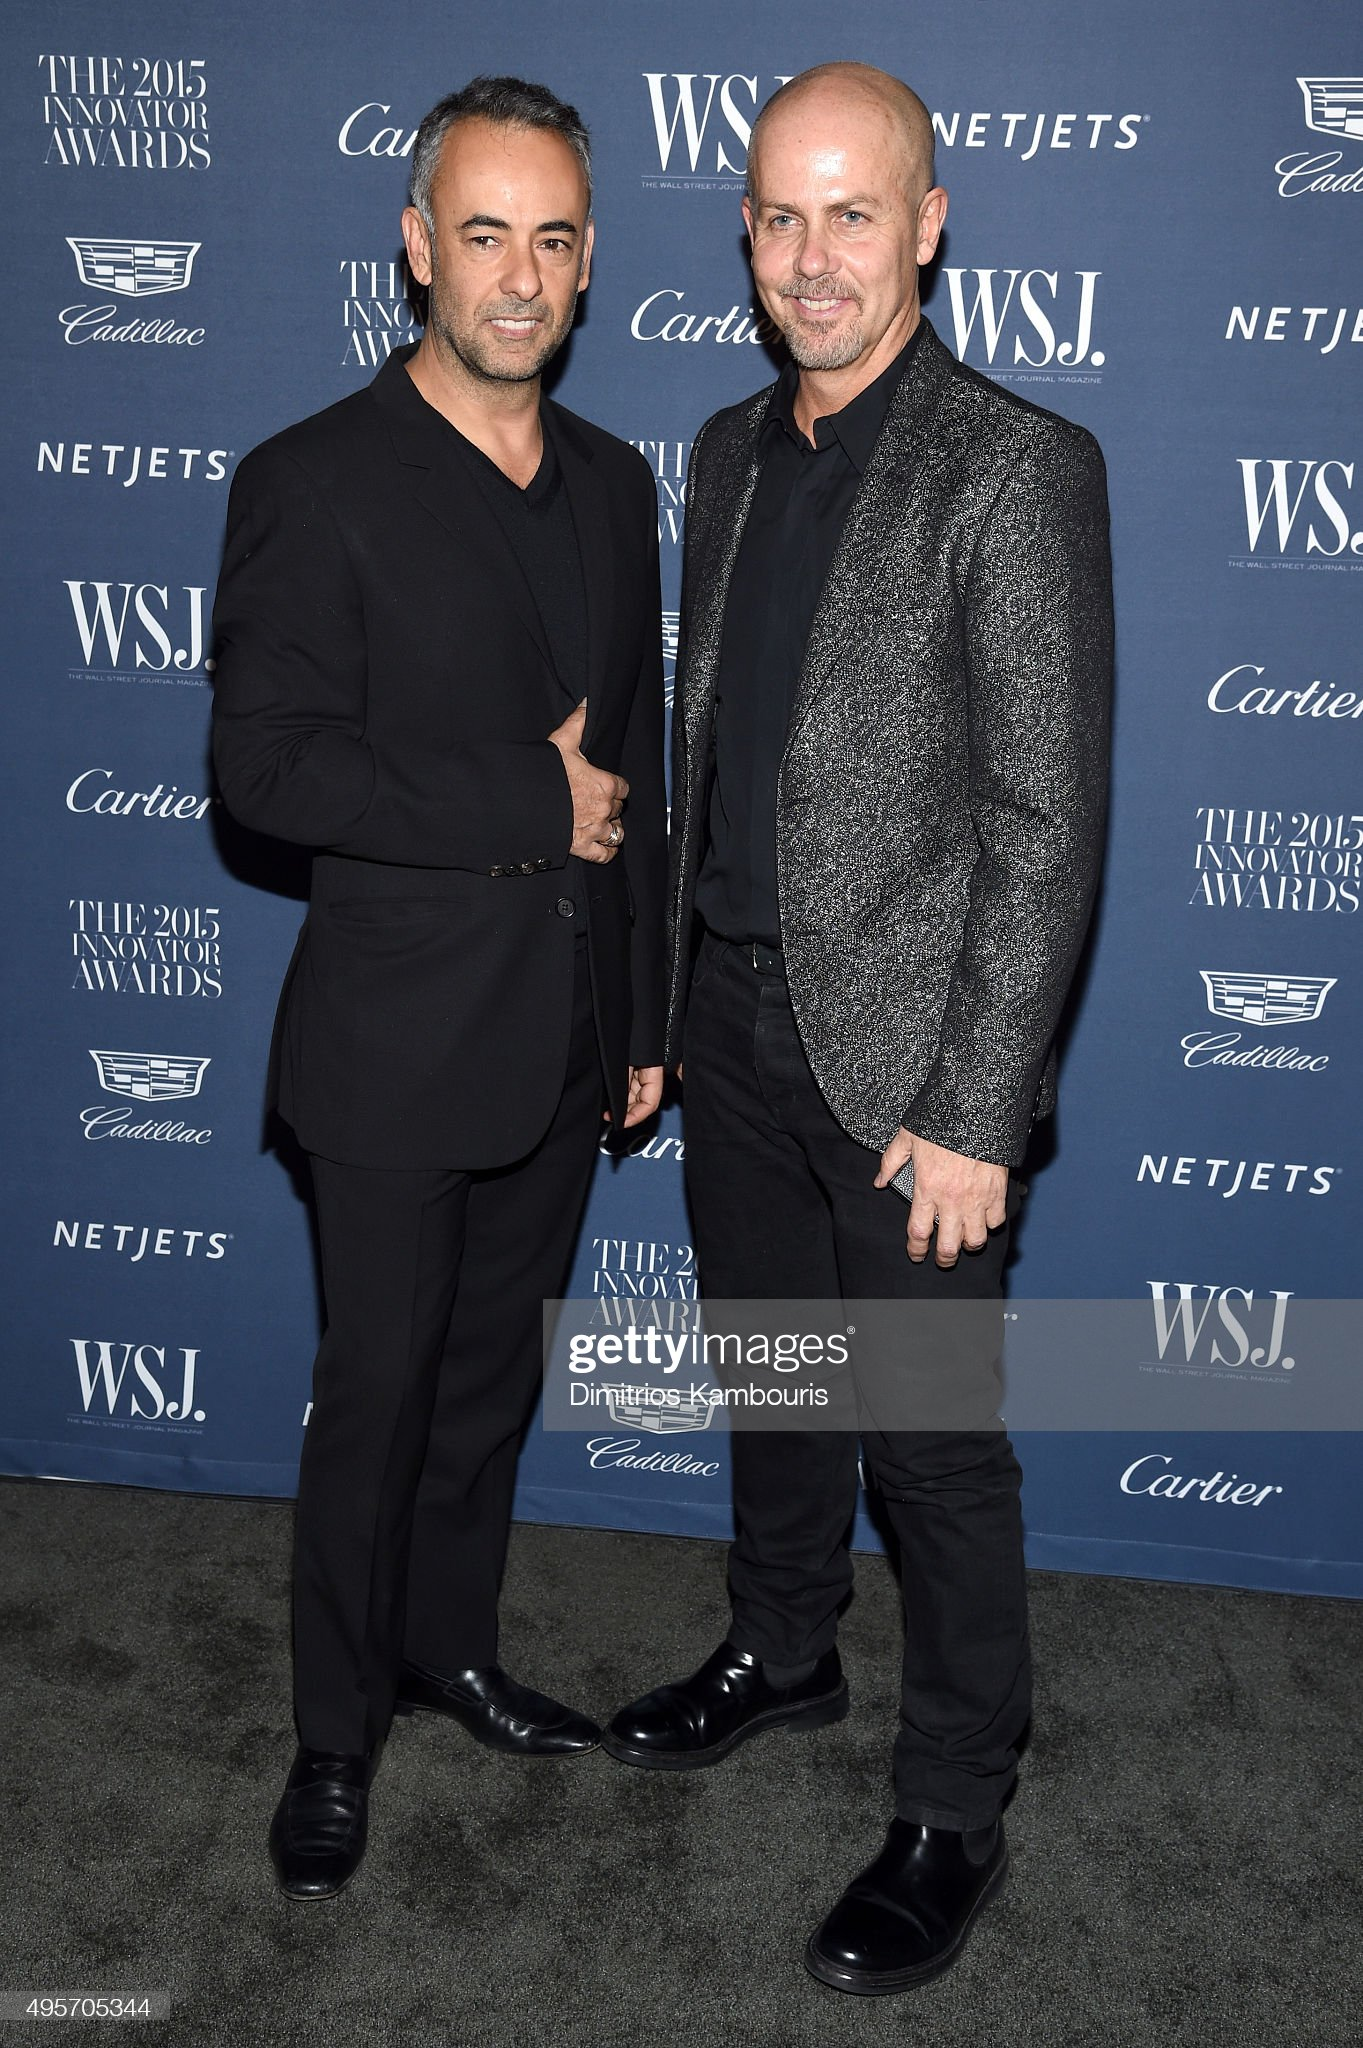 ¿Cuánto mide Italo Zucchelli? - Altura - Real height Designers-francisco-costa-and-italo-zucchelli-attend-the-wsj-magazine-picture-id495705344?s=2048x2048